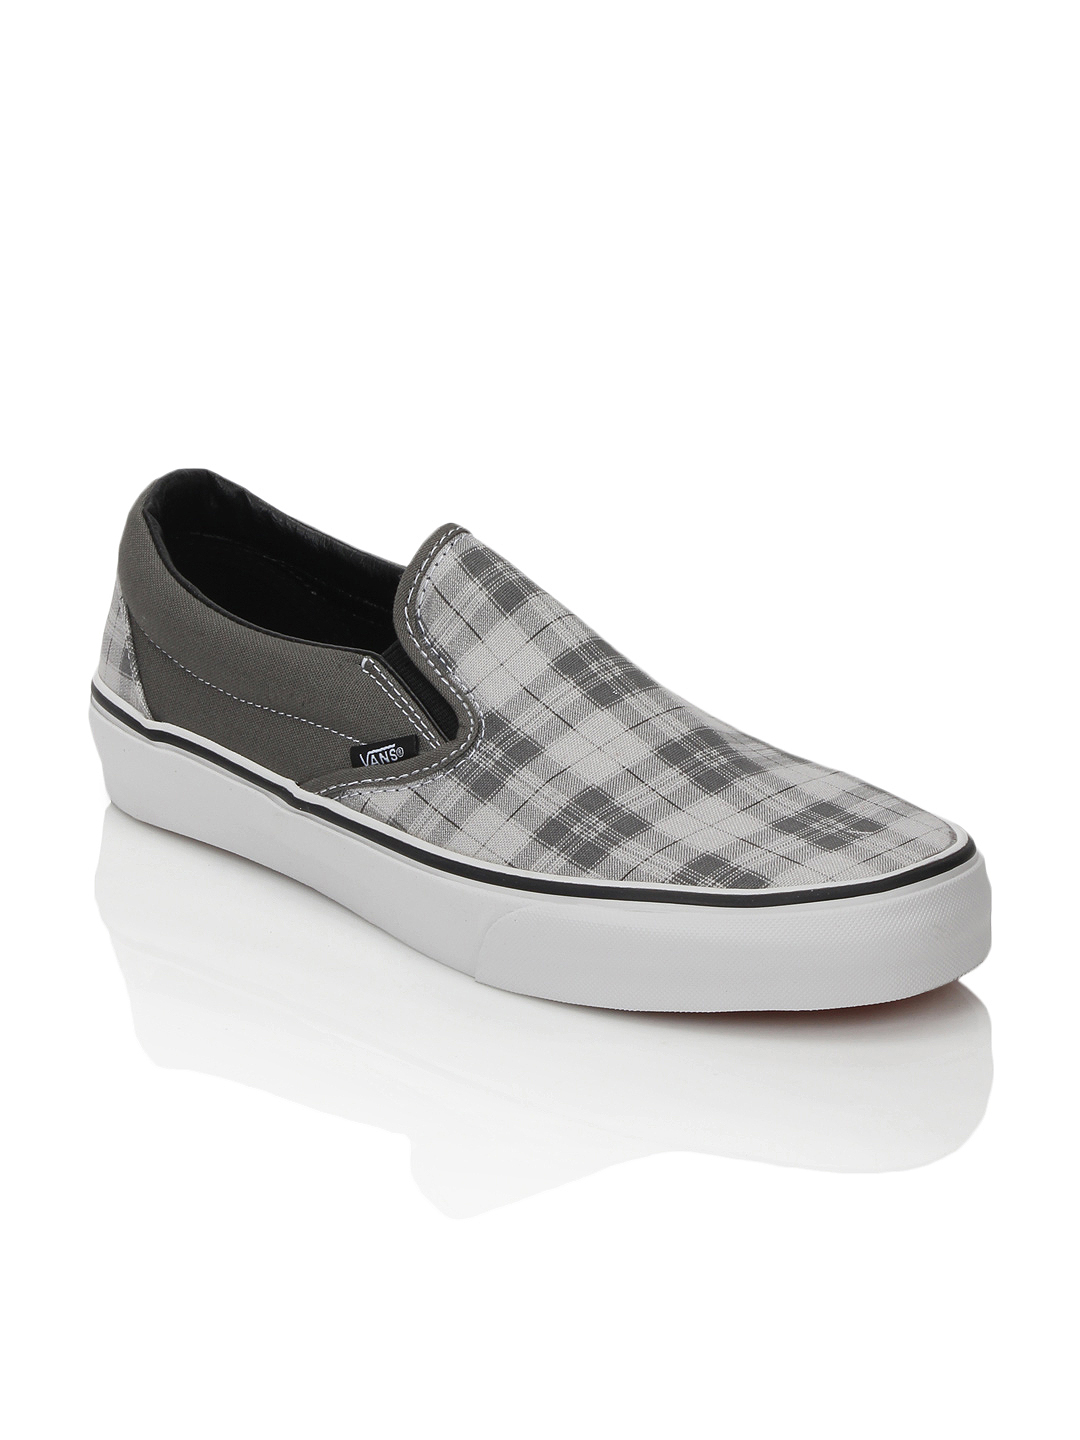 Vans Men Classic Slip-On Grey Shoes